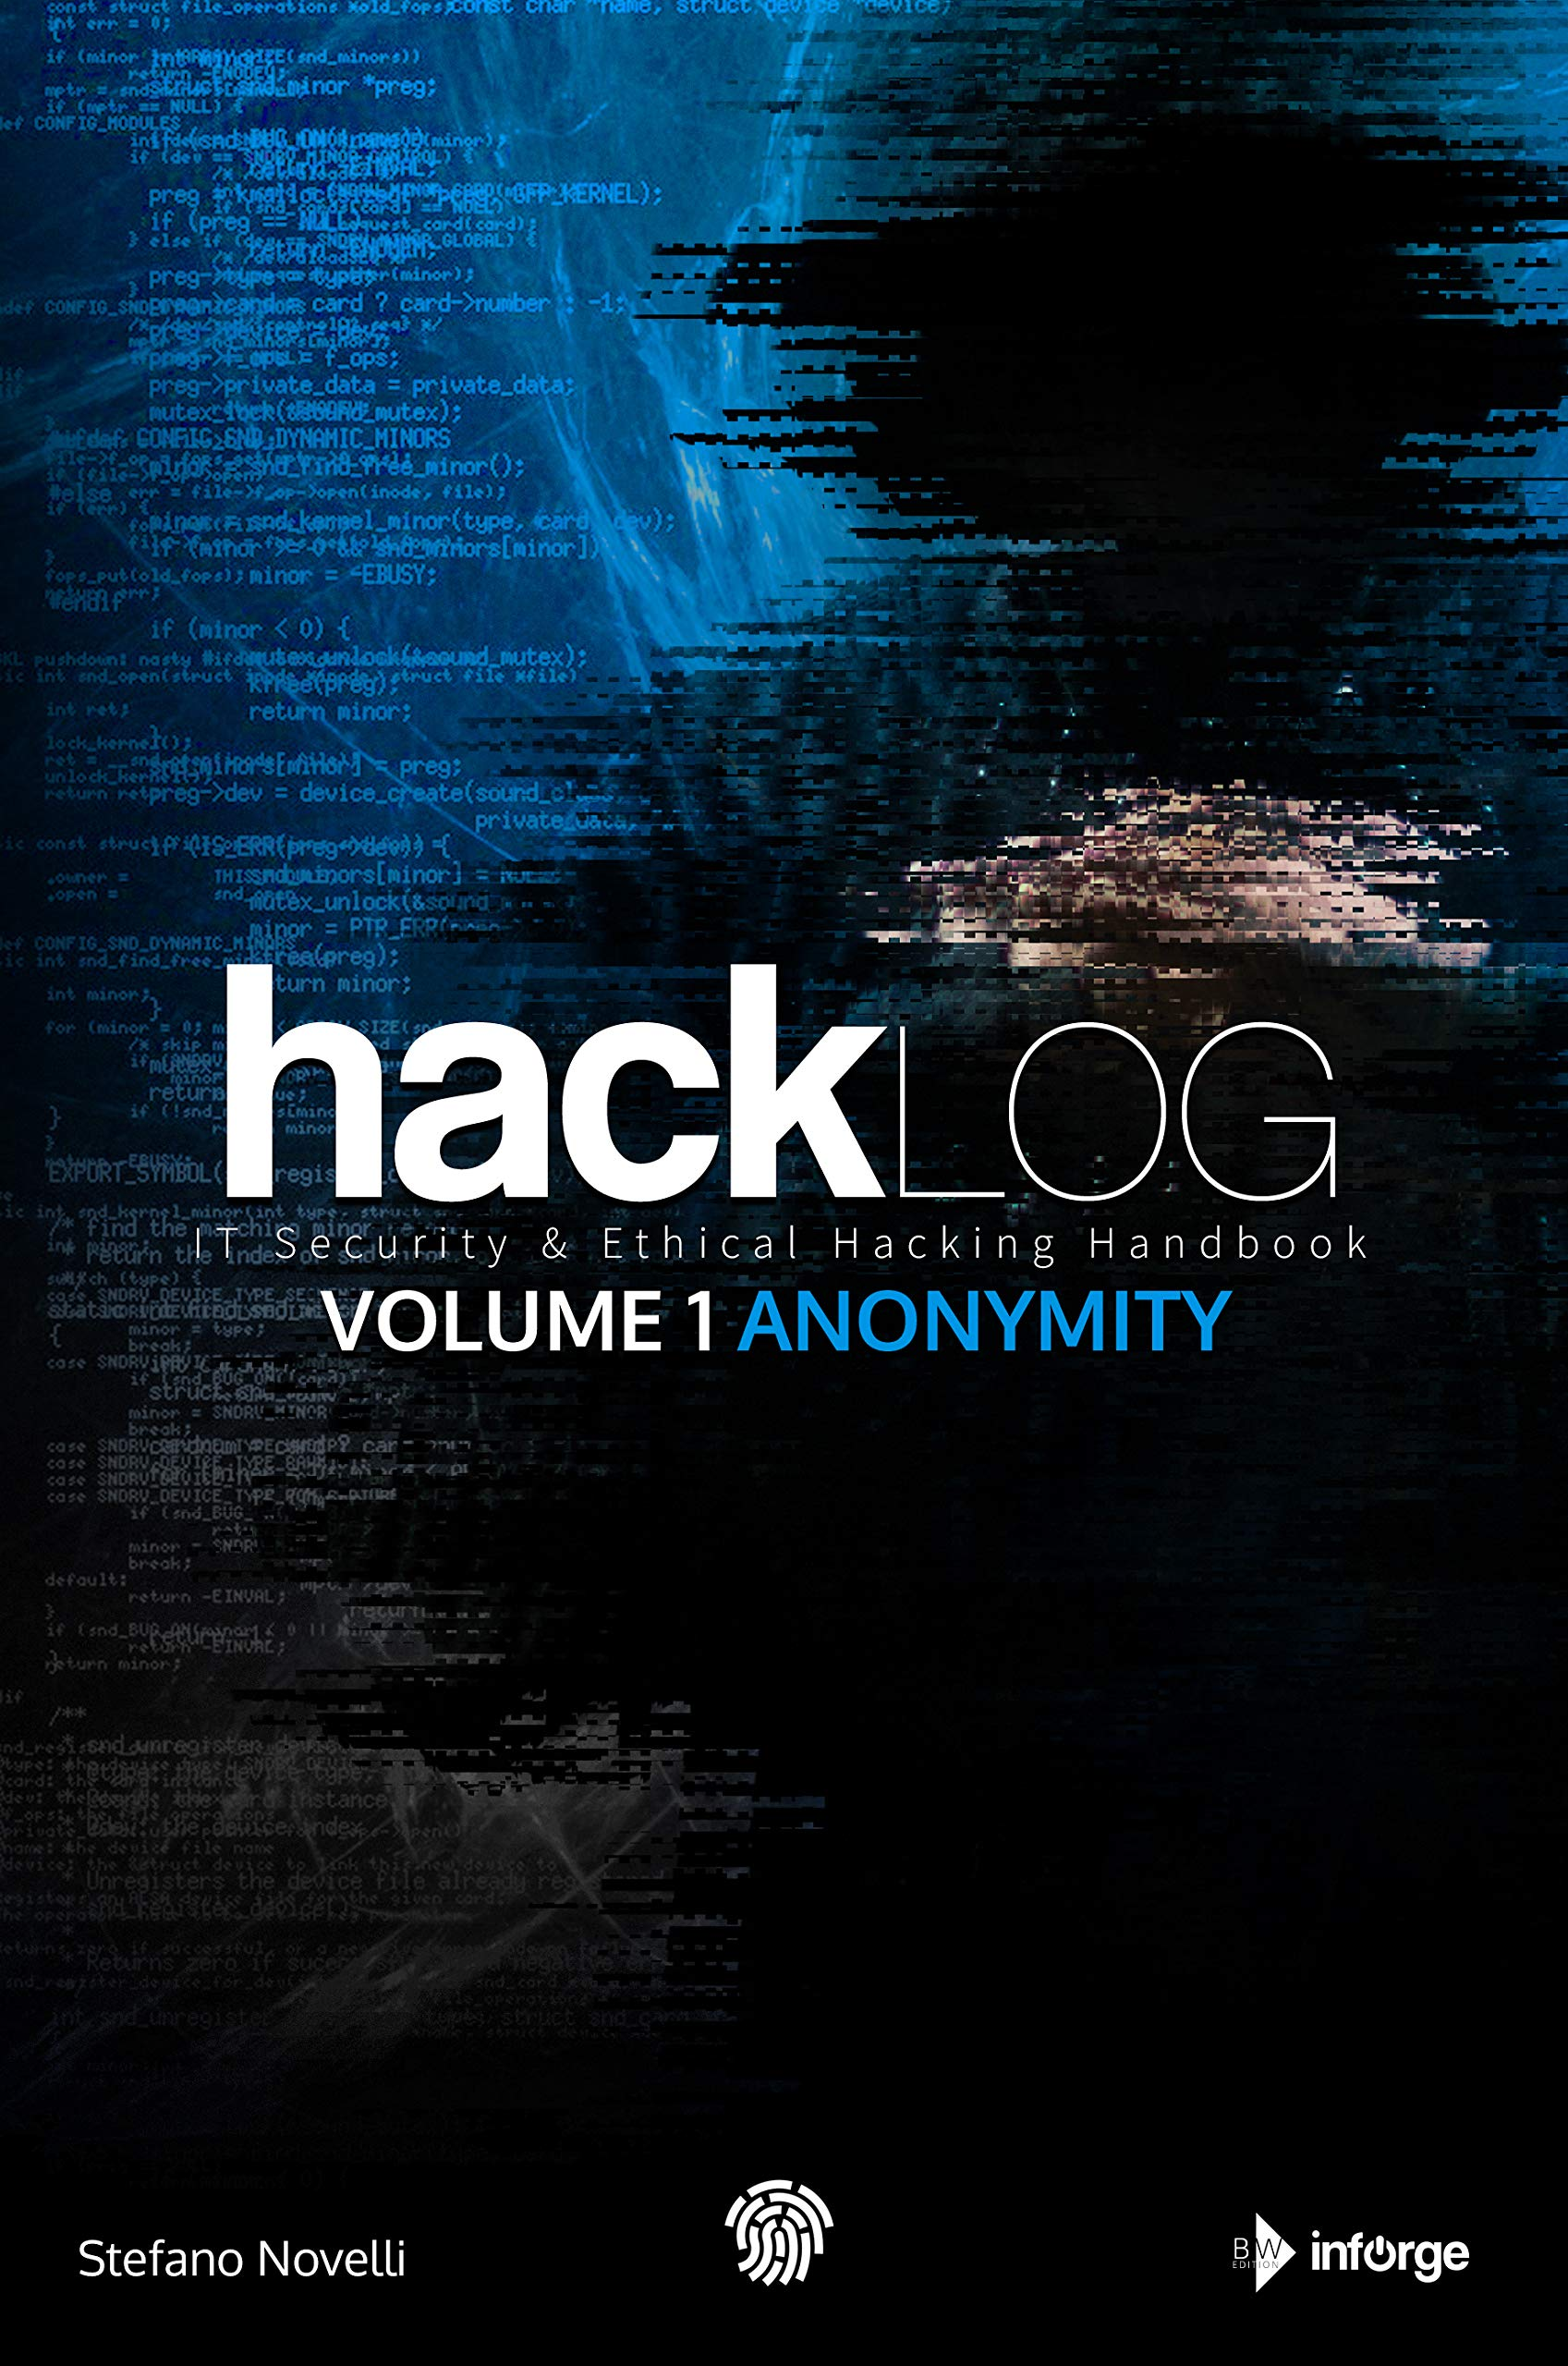 Image OfHacklog Volume 1 Anonymity: IT Security & Ethical Hacking Handbook (English Edition)